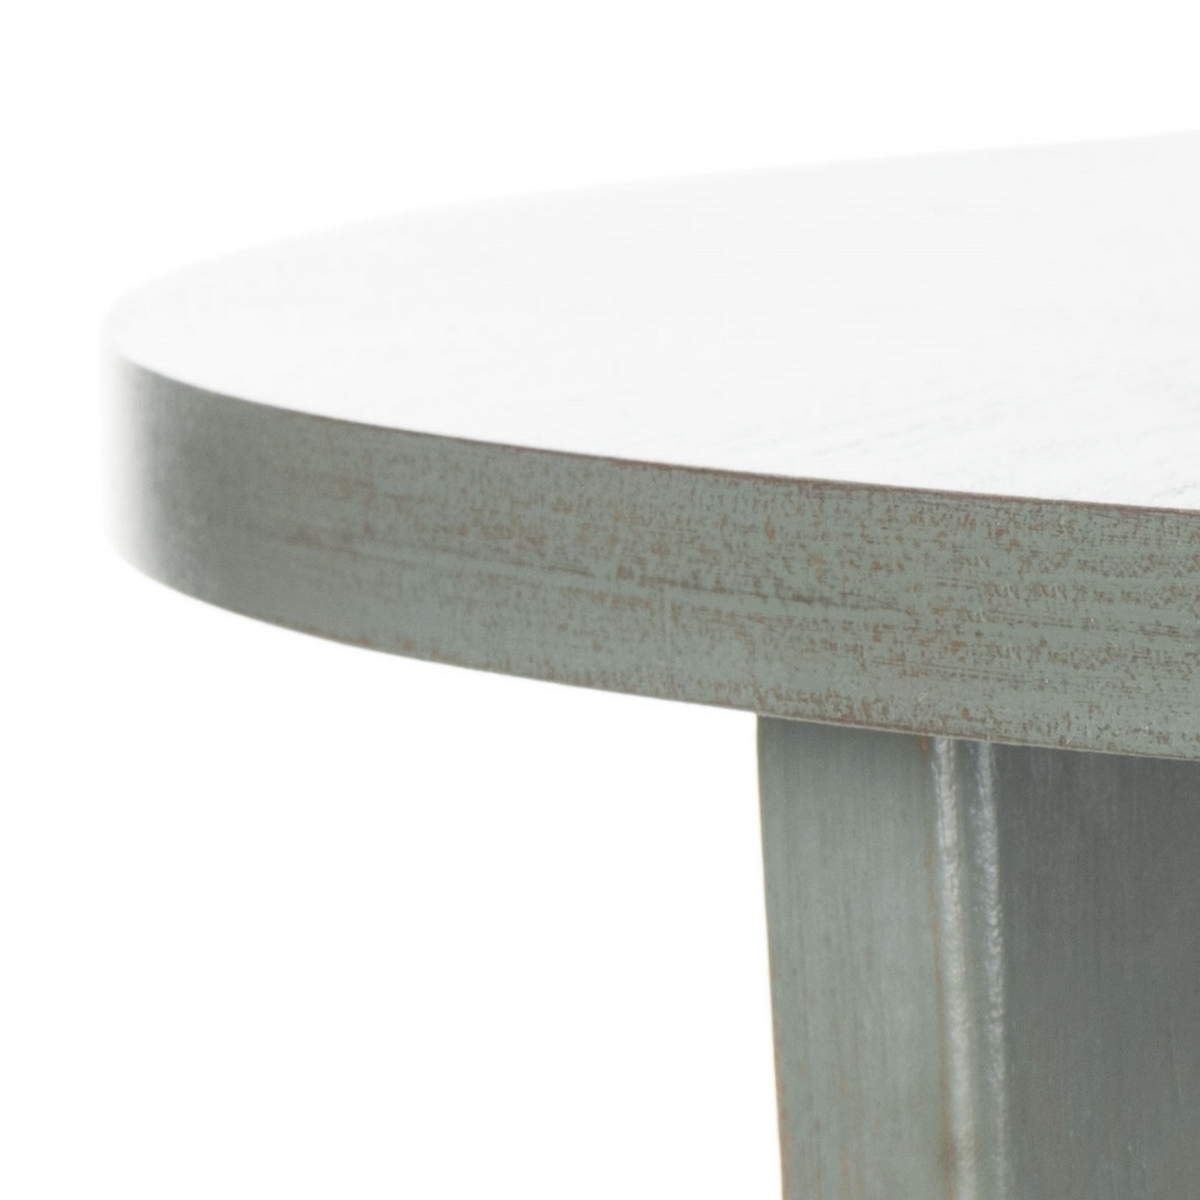 accent tables furniture safavieh detail black round pedestal table product details blue mosaic garden ikea white rustic wood target bar cart flannel backed vinyl tablecloth bench